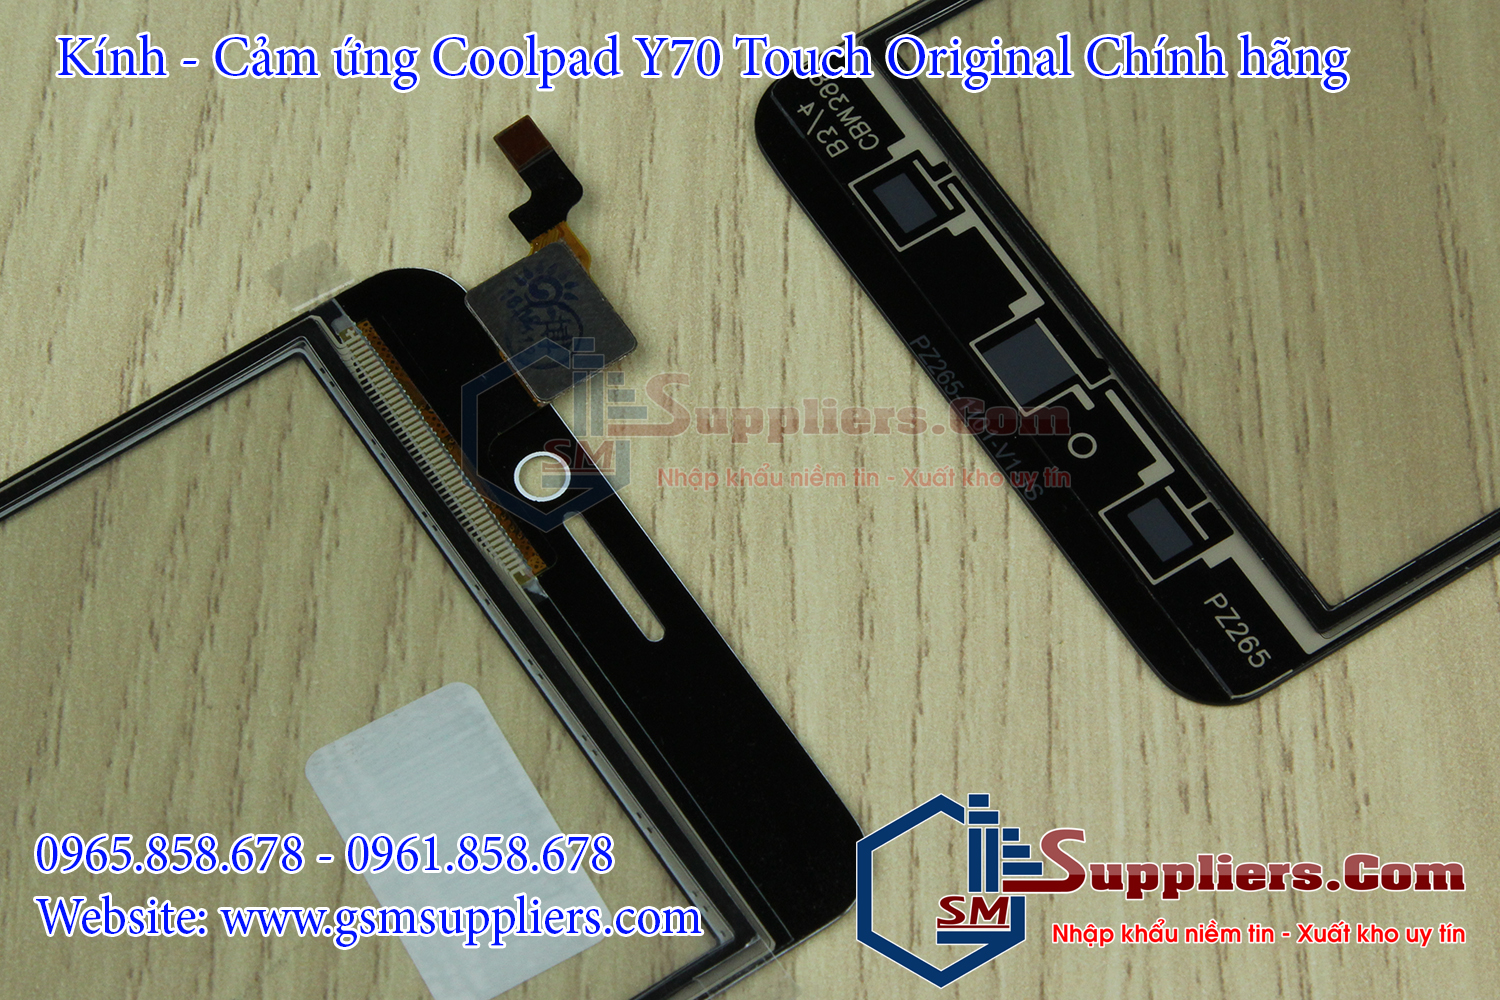 cam ung coolpad y70 hang chinh hang gia re tai ha noi 3